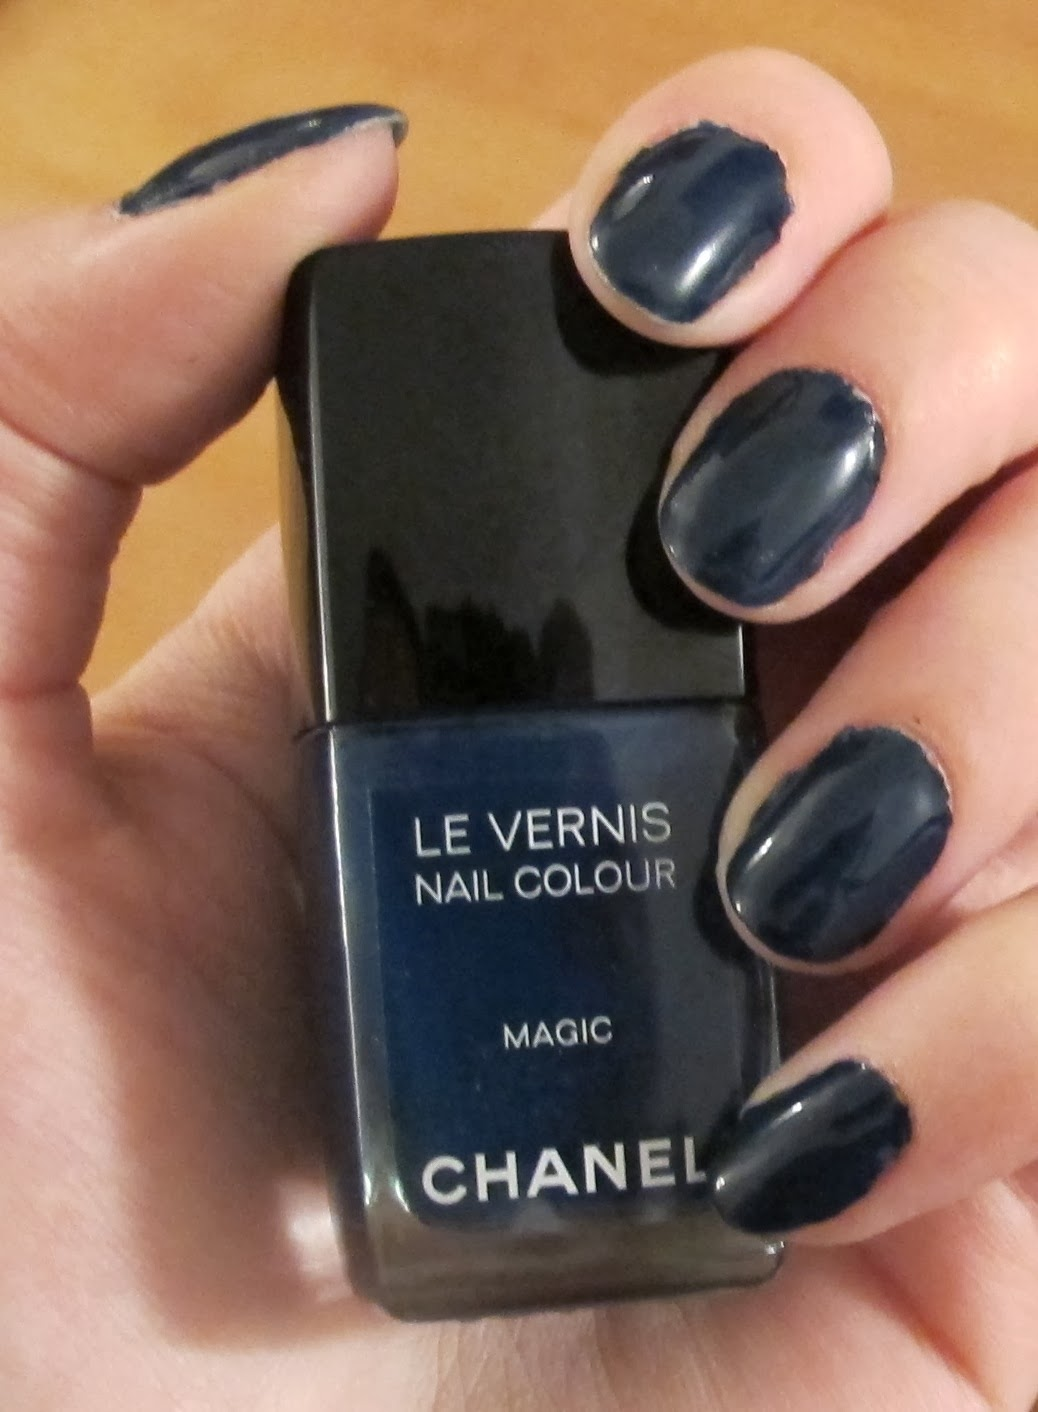 Steph Stud Makeup: Dark Navy Blue Manicure using Chanel